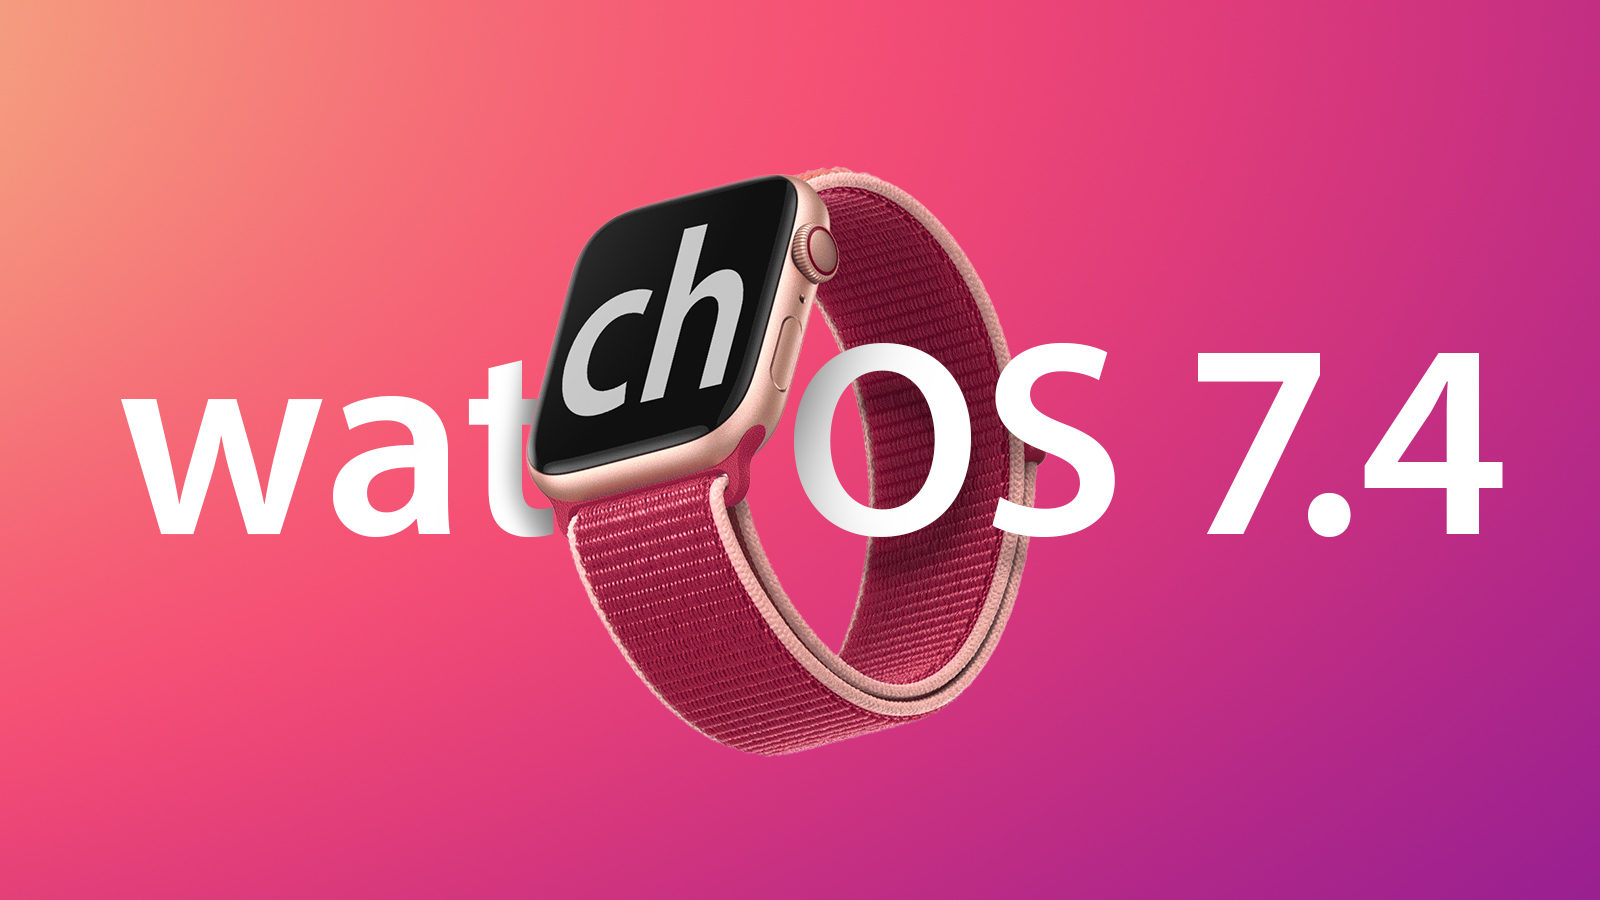 Apple Releases watchOS 7.4 With iPhone Unlocking, Apple Fitness+ AirPlay 2 Support